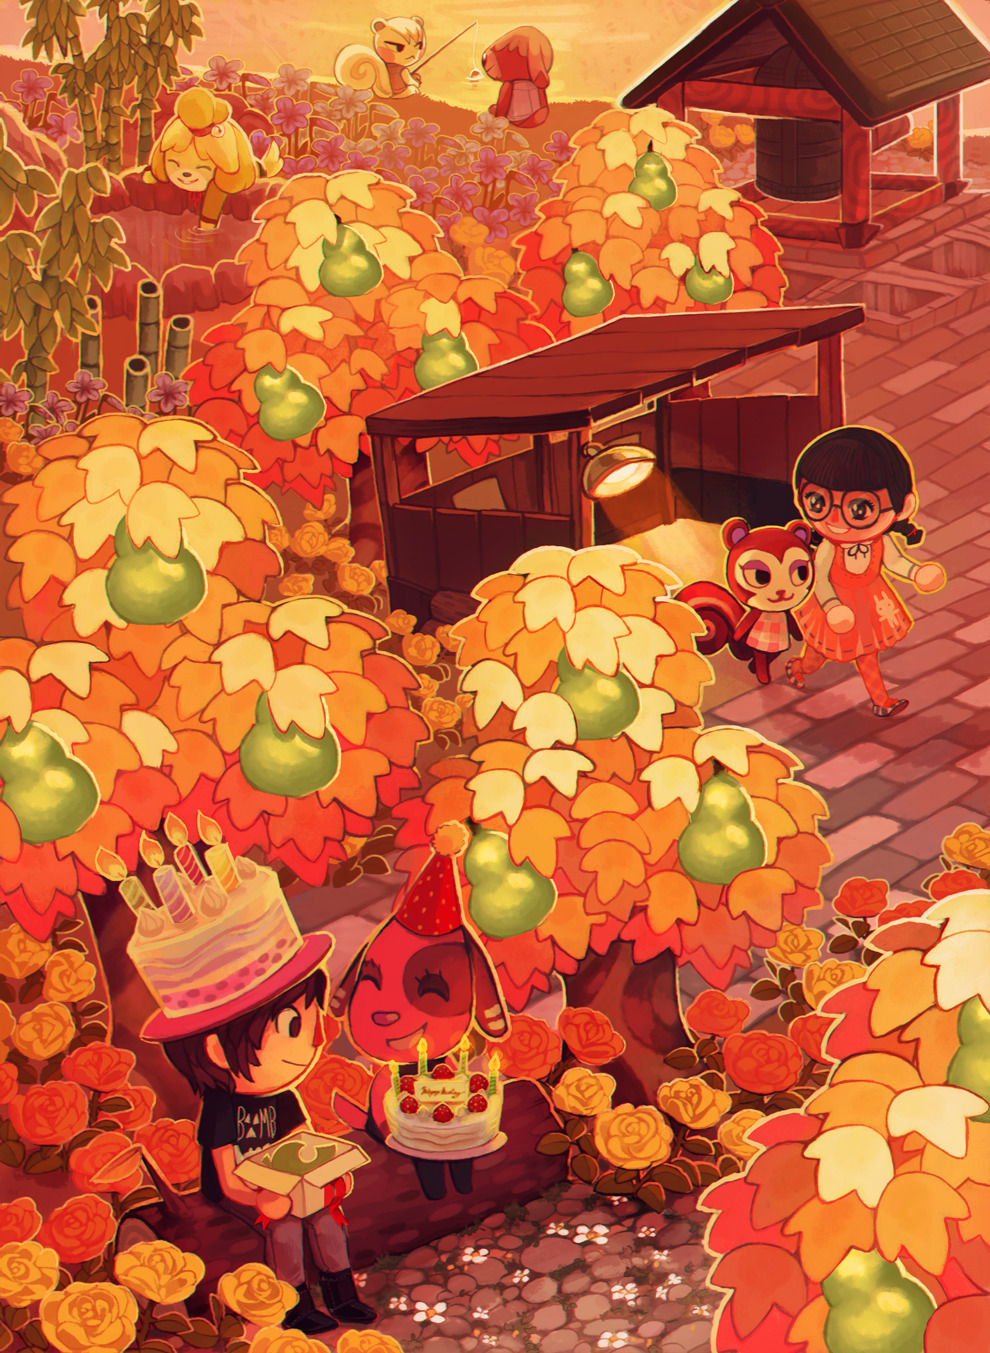 Animal Crossing Fall Wallpaper Animalcrossing Us Preoprix Animal Crossing Commission